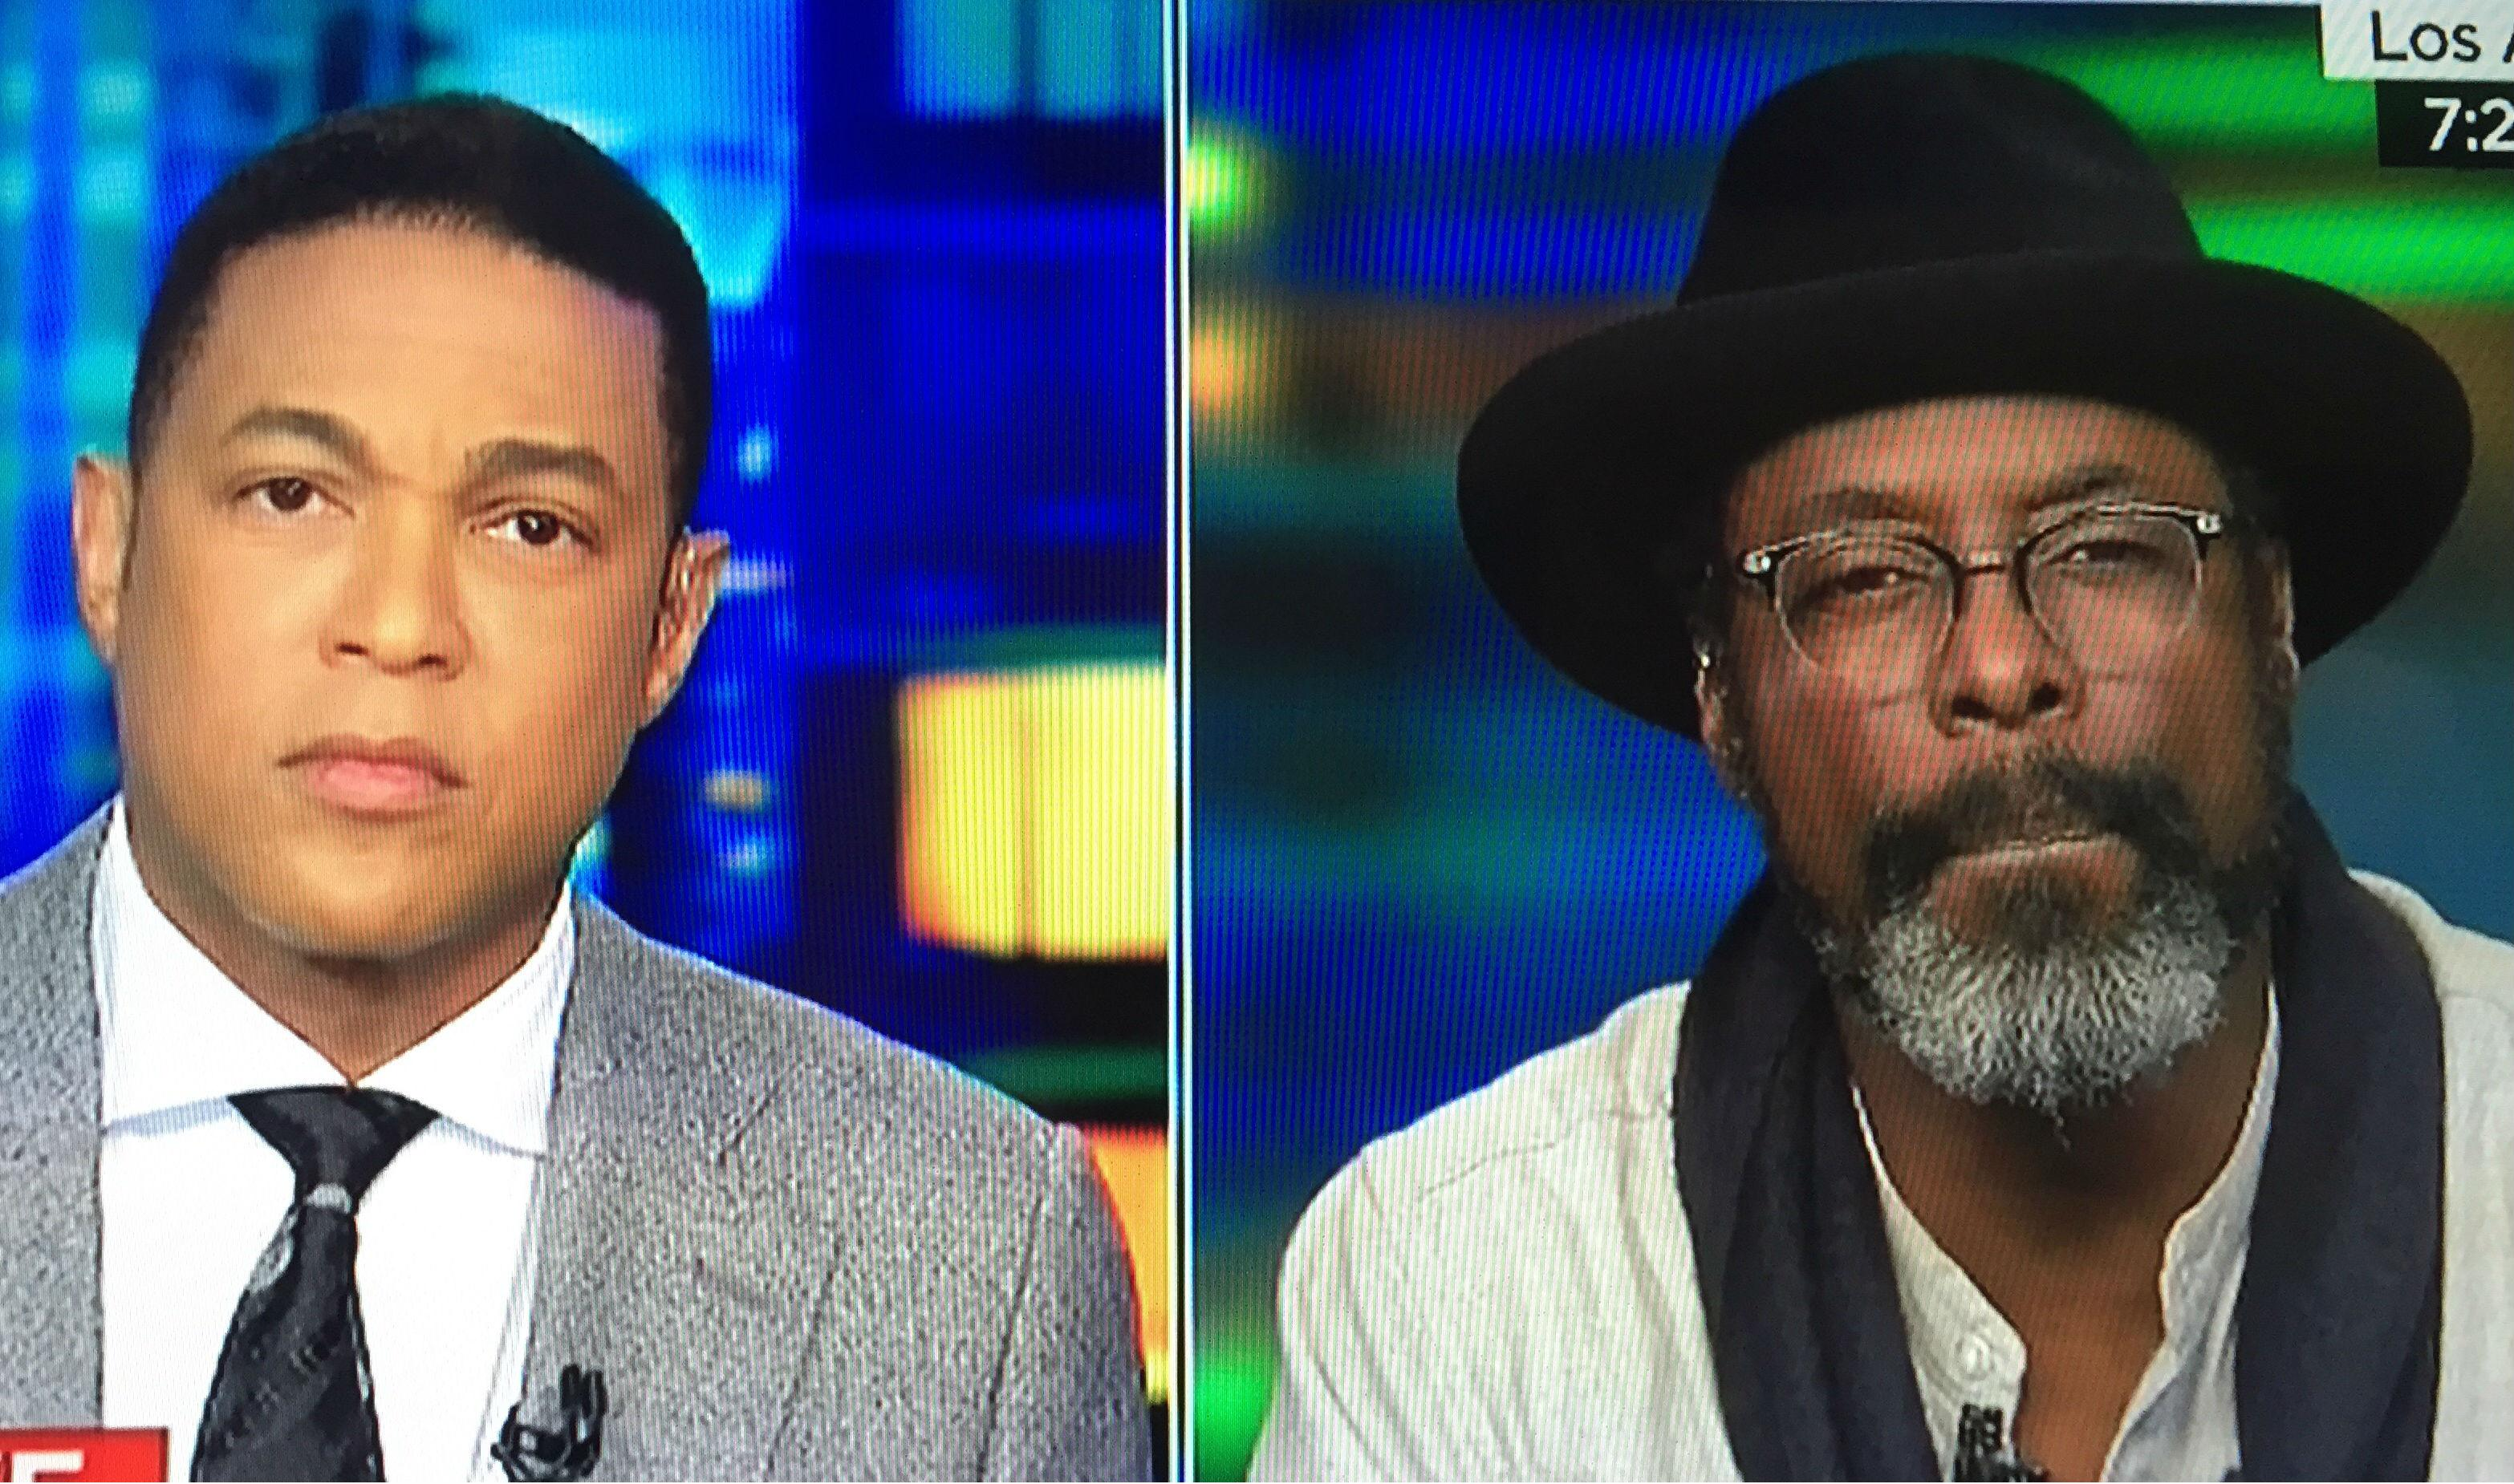 Isaiah Washington Baffles CNN Viewers in Bizarre Defense of Racial Profiling Comments